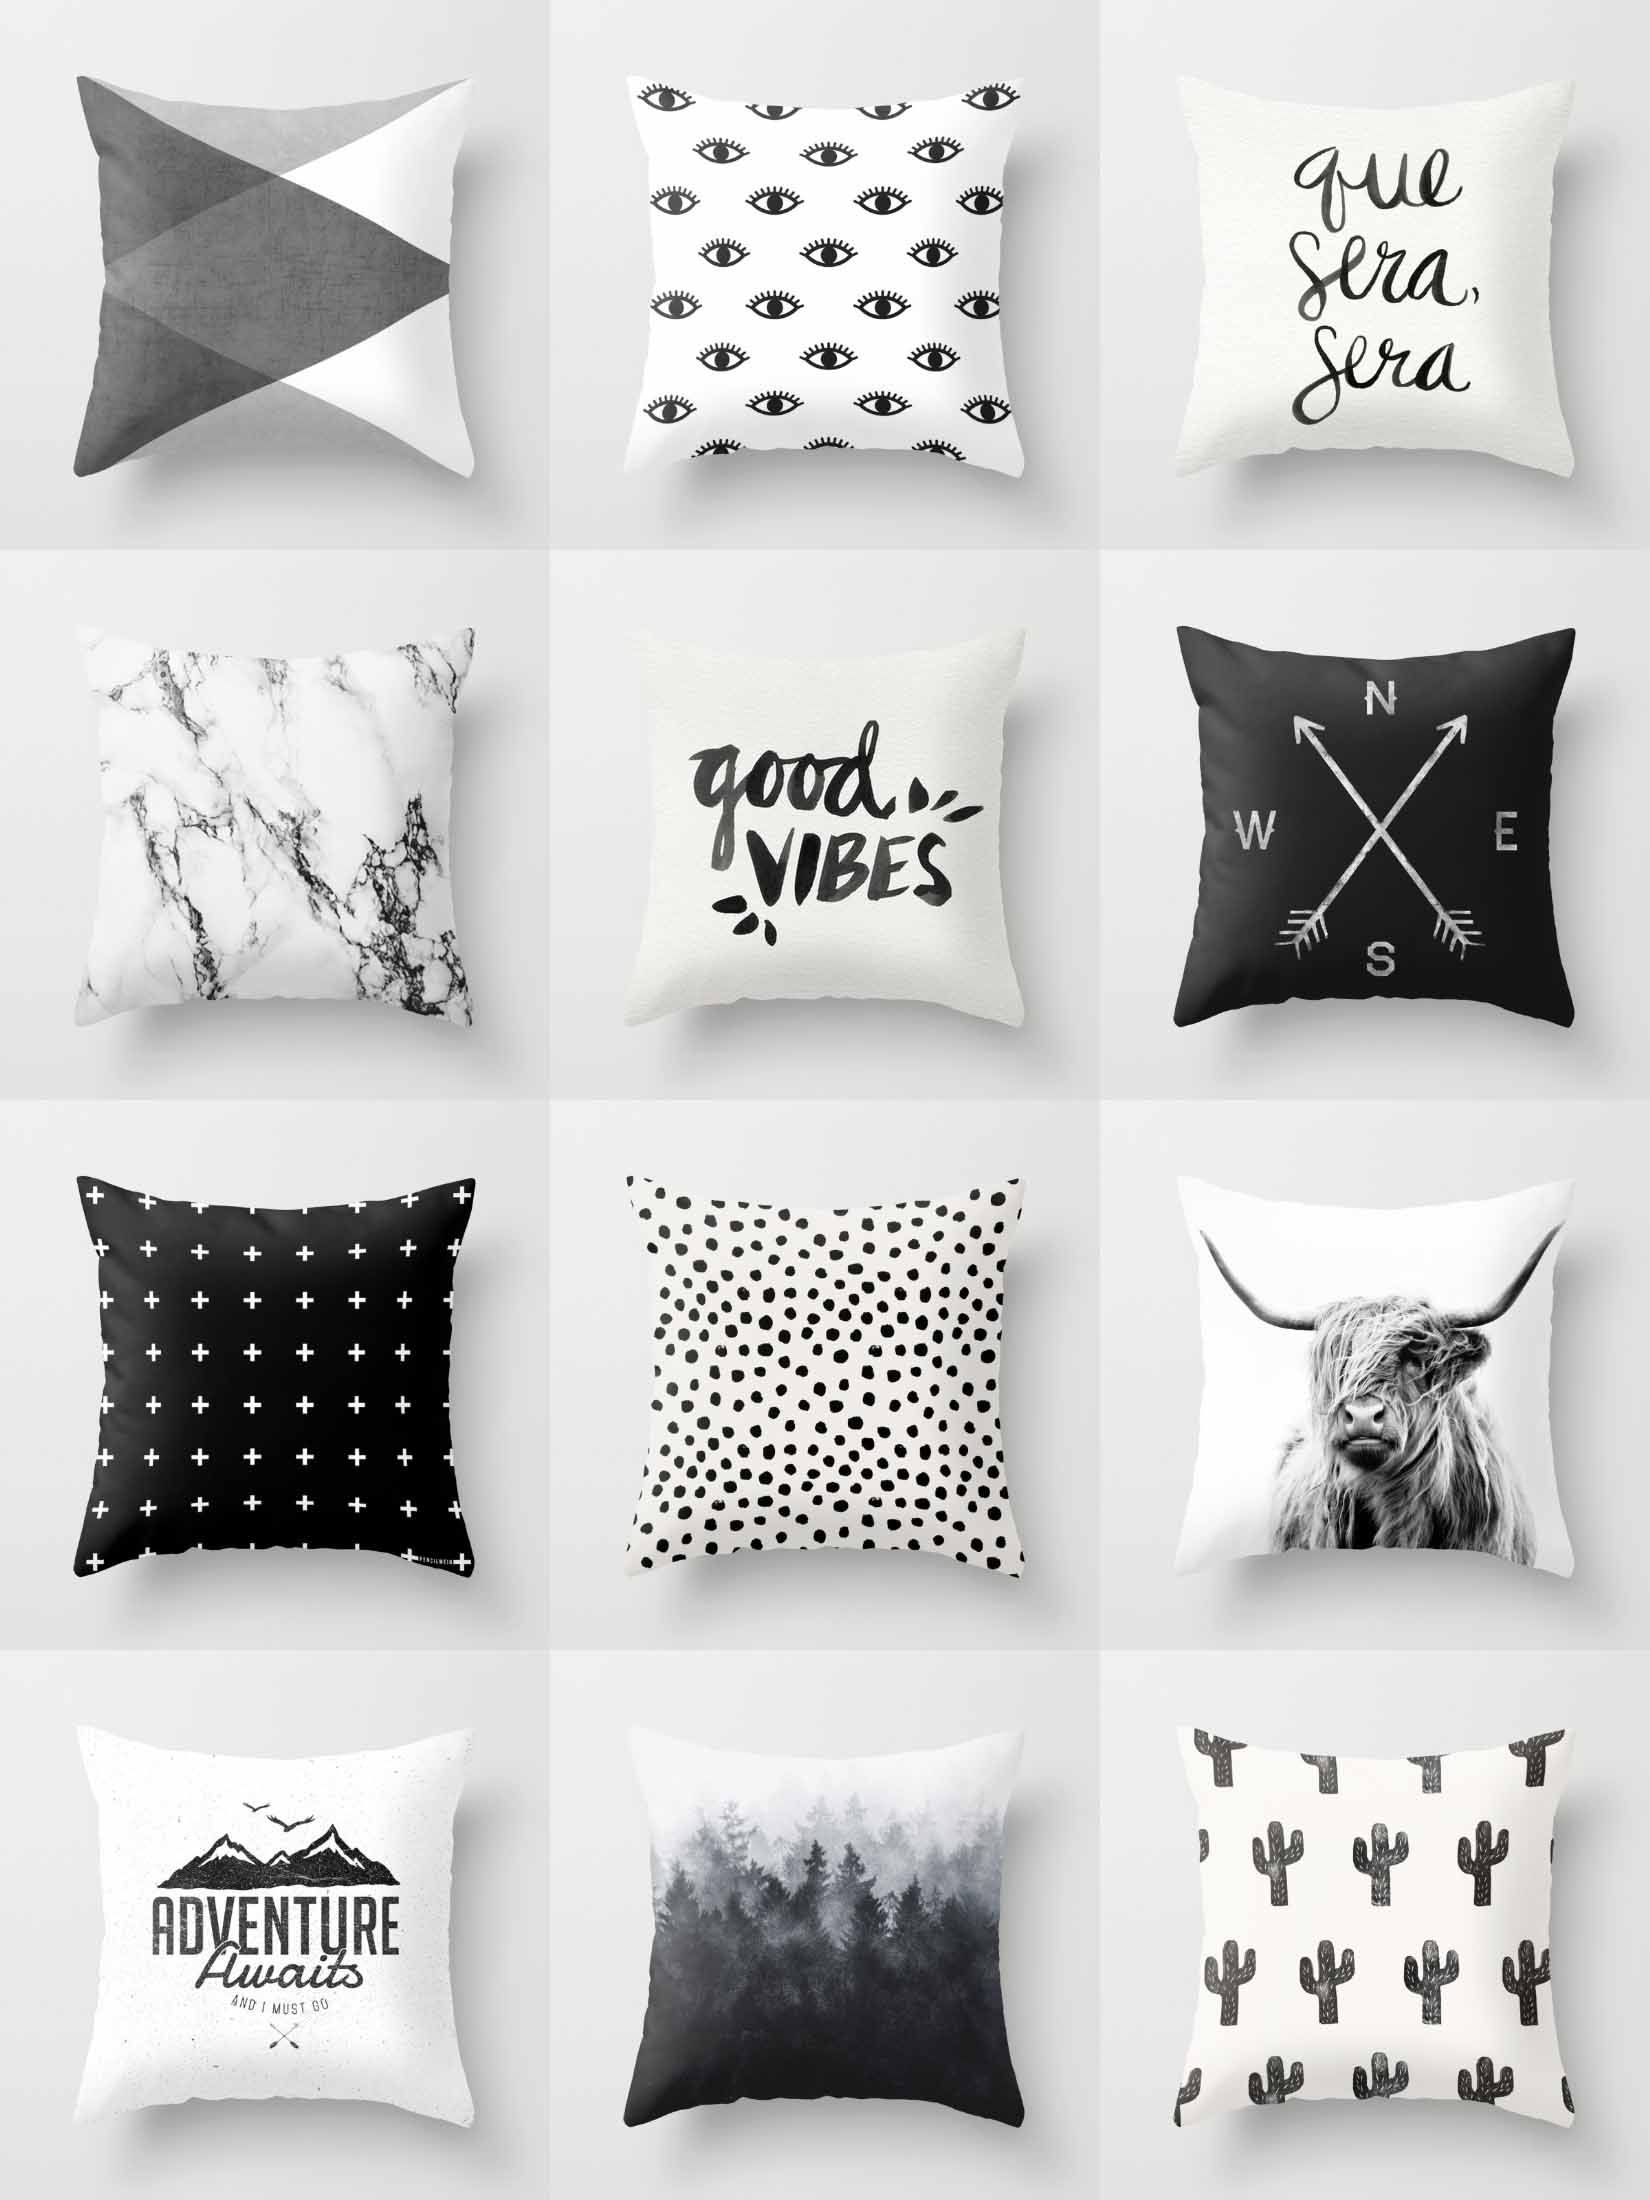 ideas rustic covers festivehomedecor with inspiration by throw yellow pillows decor accent pillow